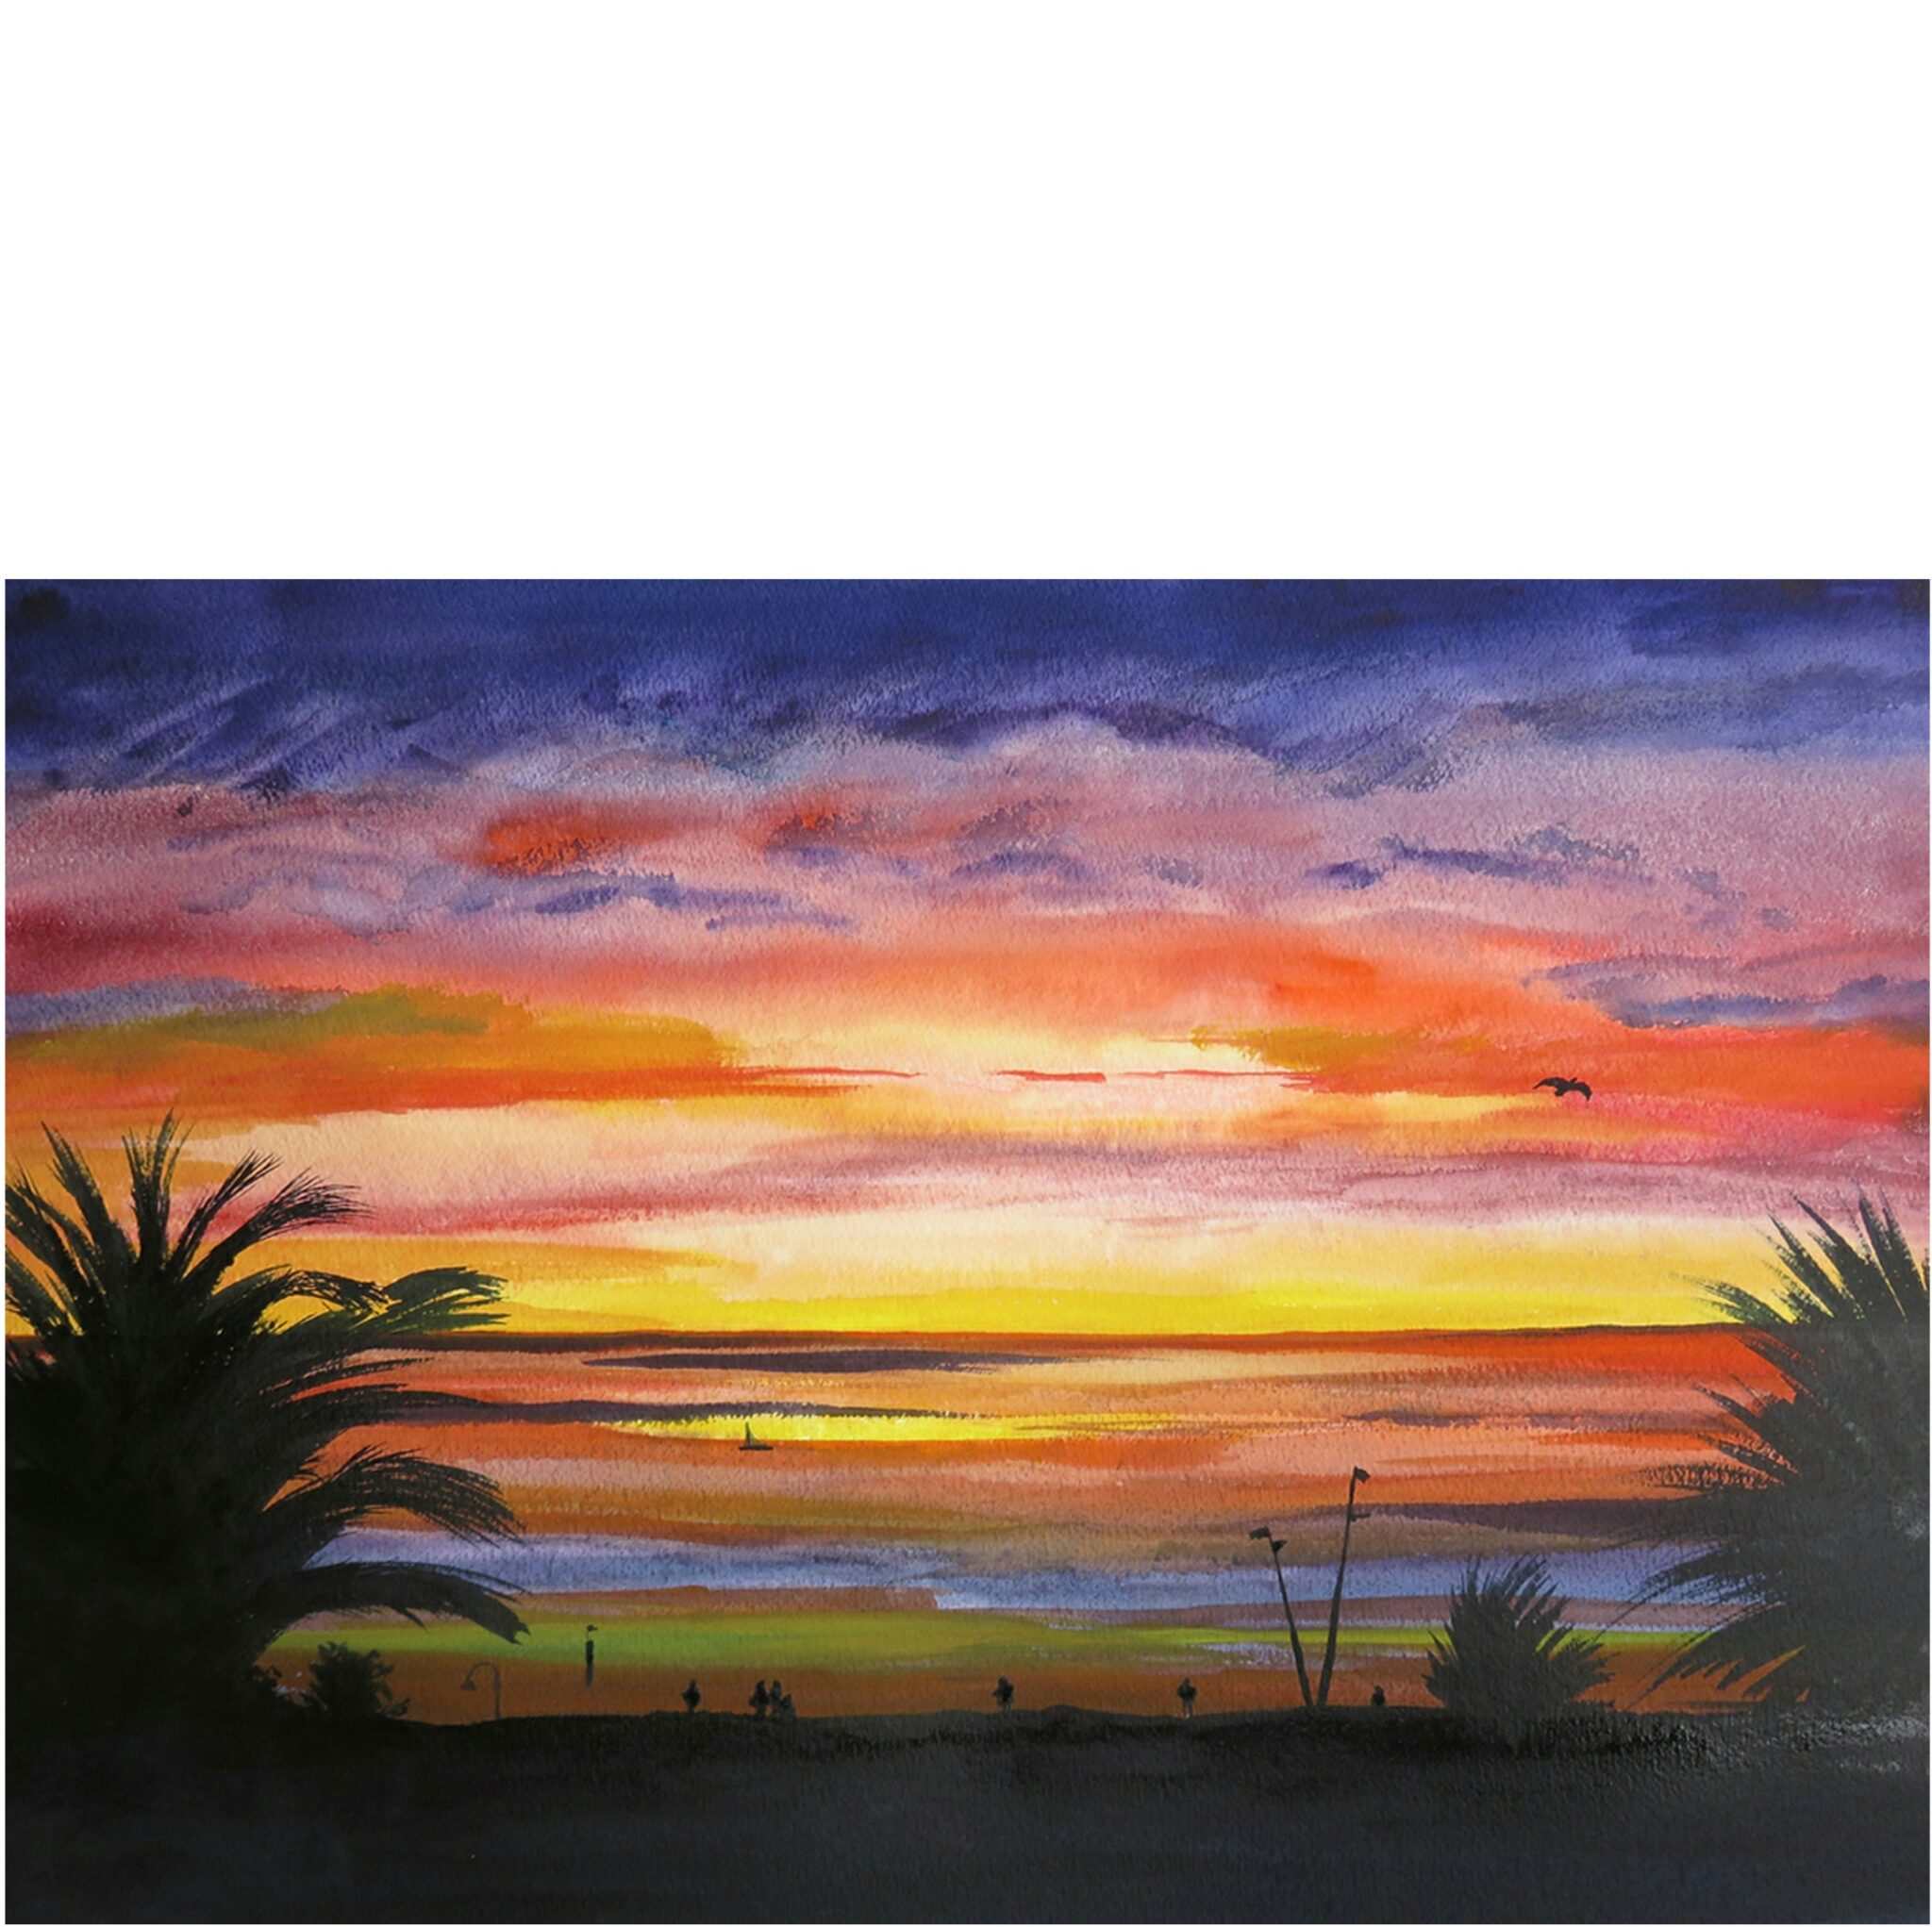 Limited Edition Print Of A Beautiful St Kilda Sunset By Local Artist Carin Lavery